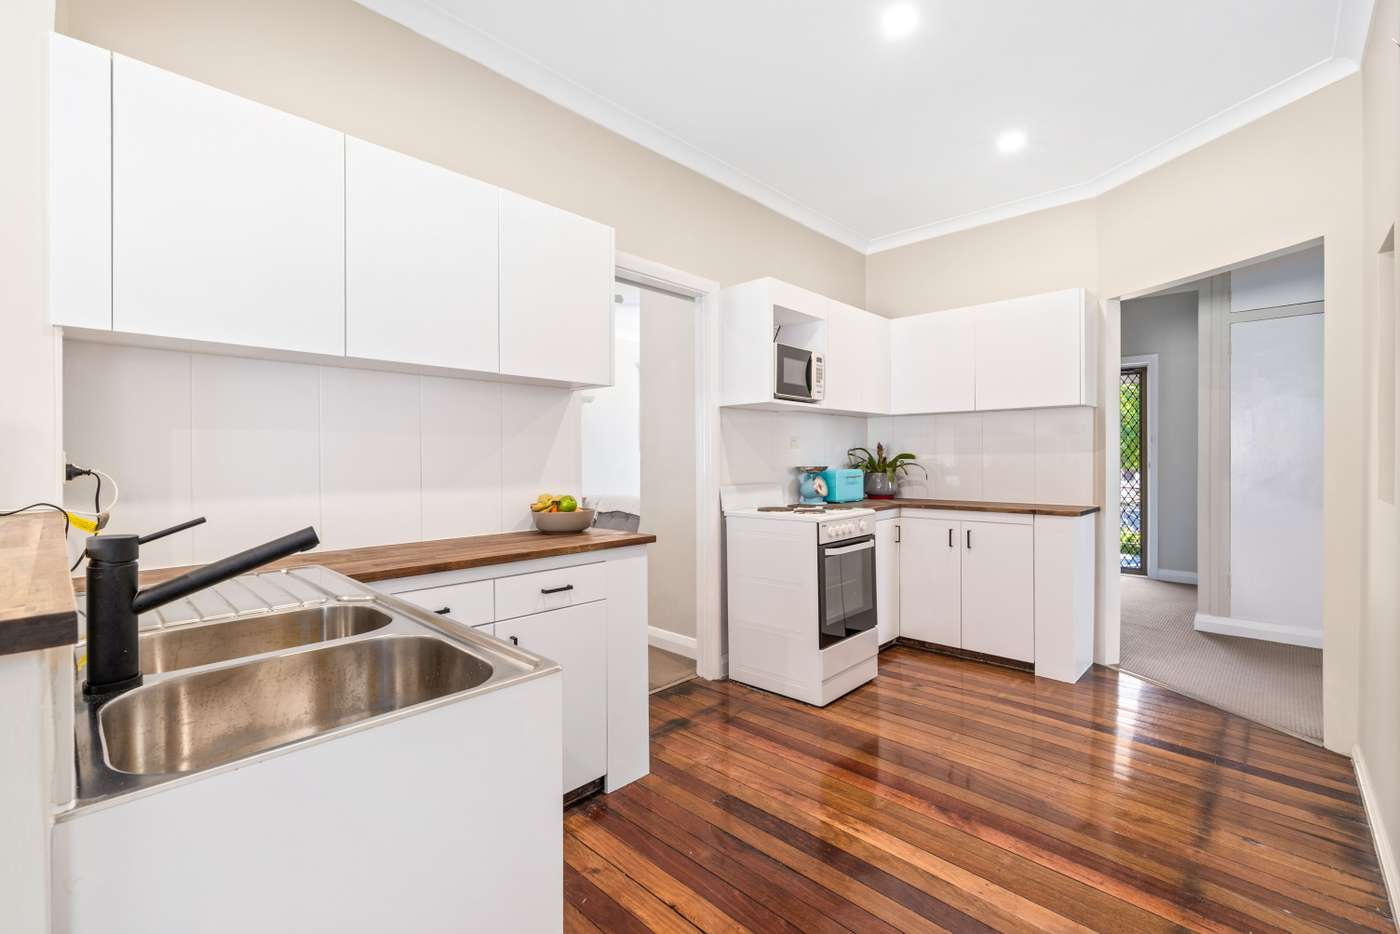 Fifth view of Homely house listing, 19 Carnley Avenue, New Lambton NSW 2305